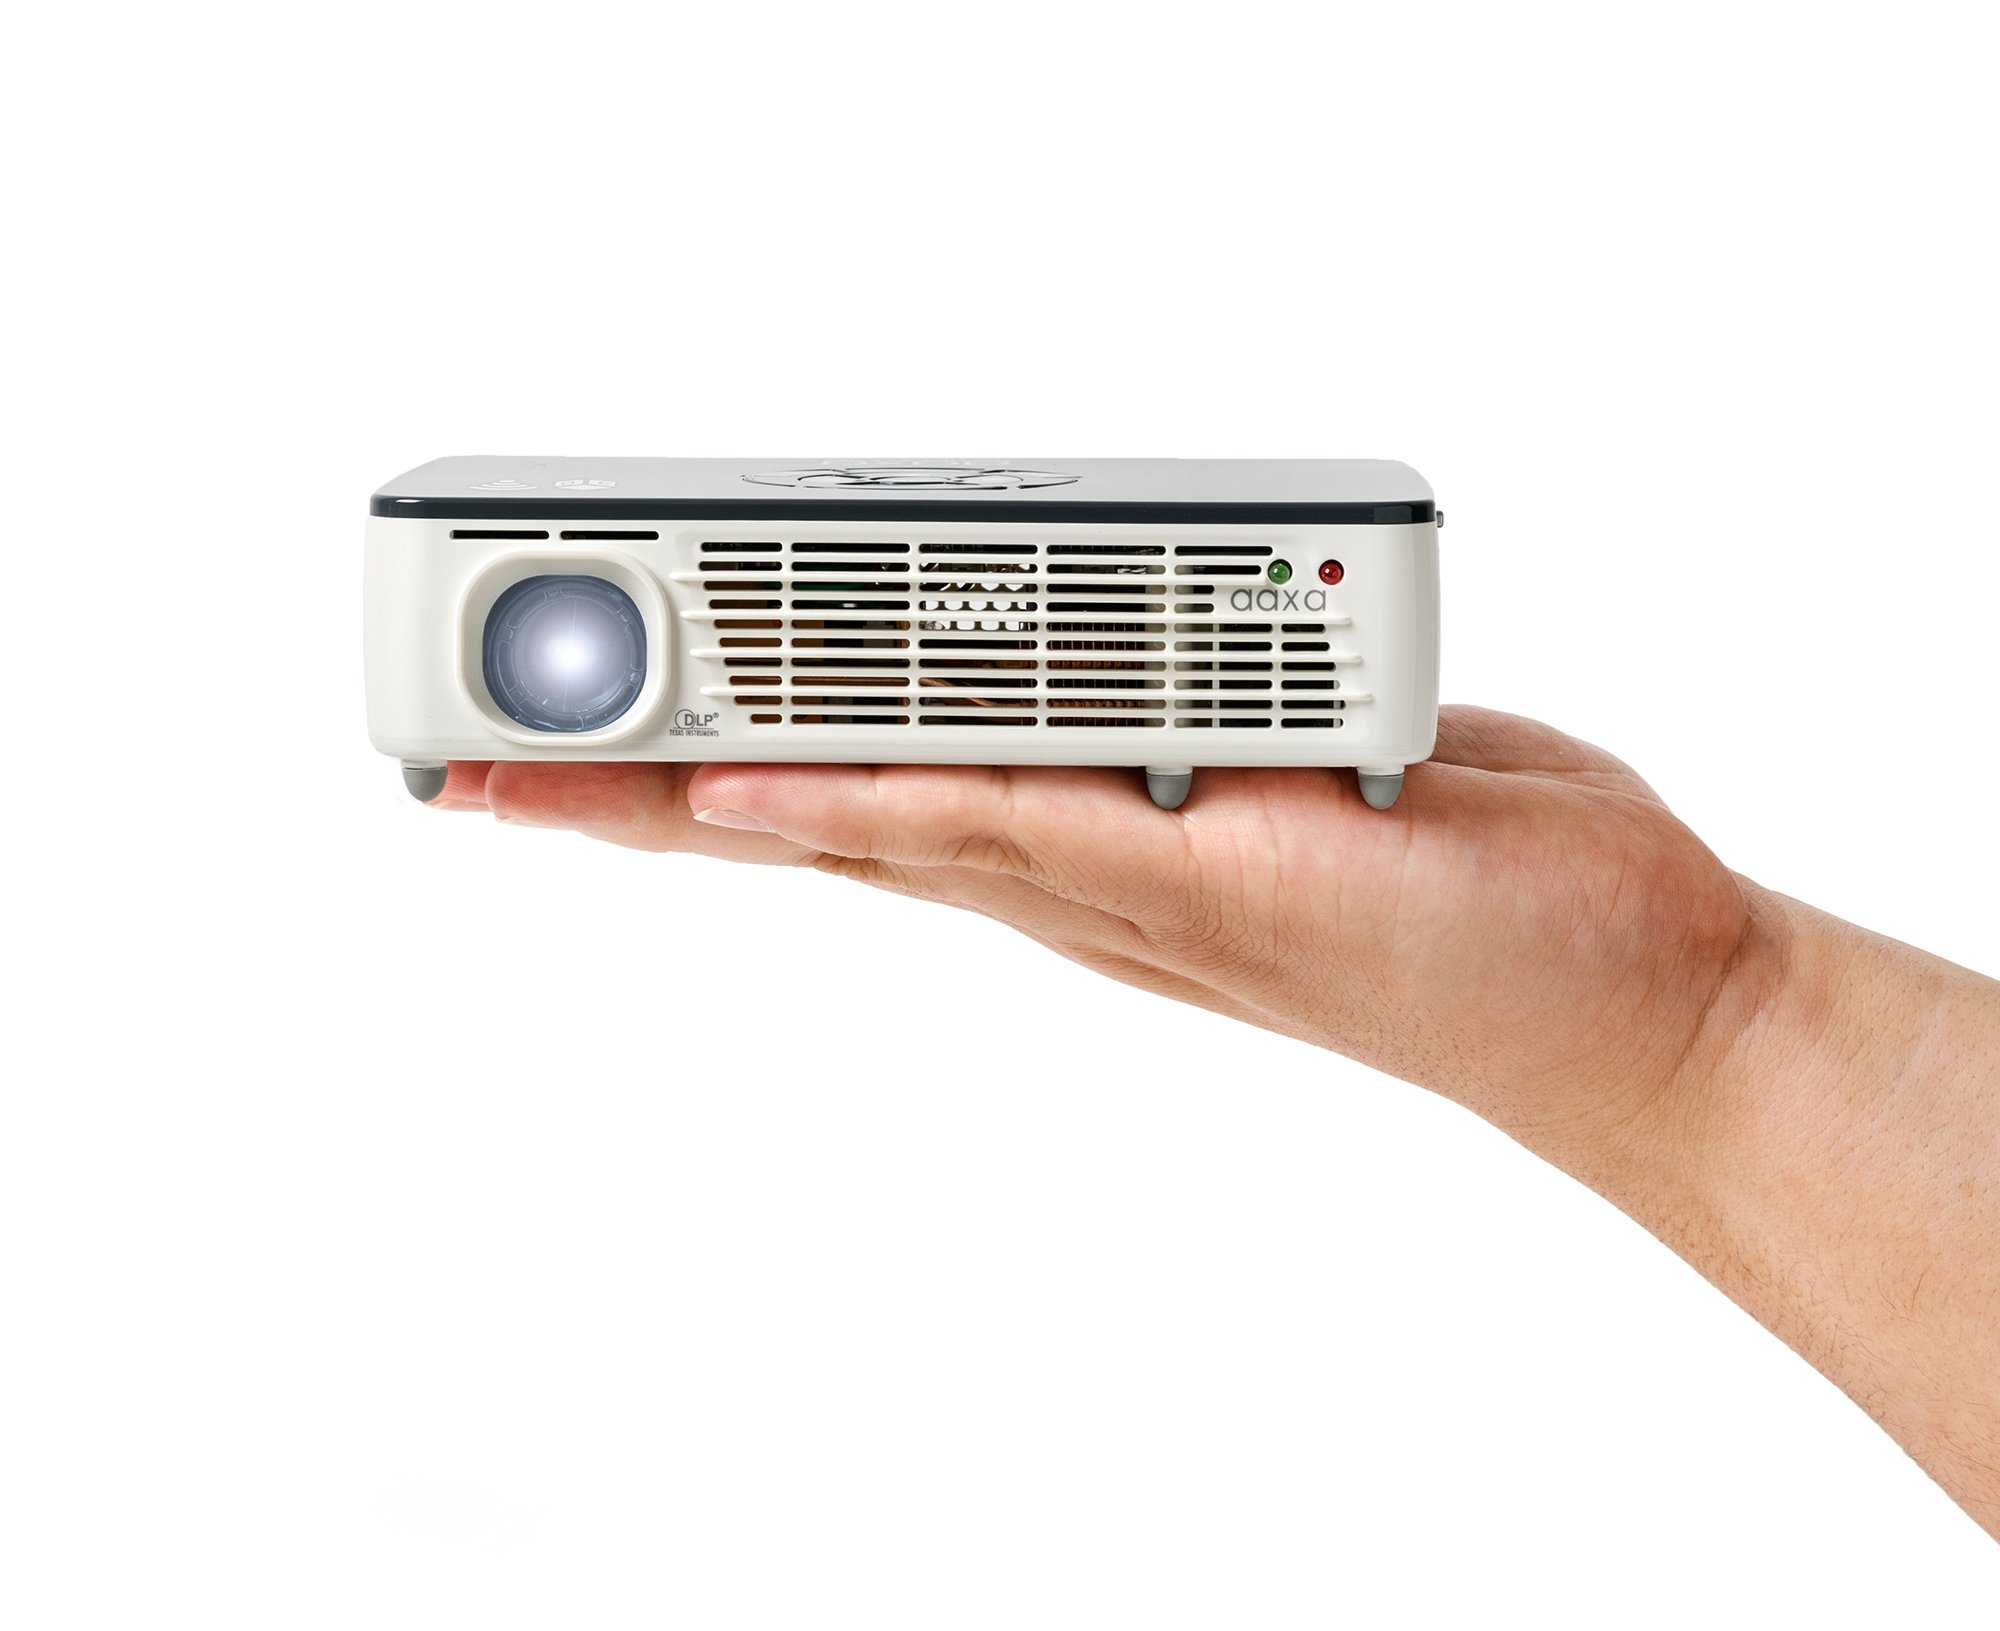 AAXA P450 Pro 3D LED Pico/Micro Smart Projector, Built-in Video Streaming Apps, Office Viewer, WiFi & Bluetooth, WXGA HD Native Resolution, Android OS, DLP, HDMI, Home Theater & Business, 500 Lumens